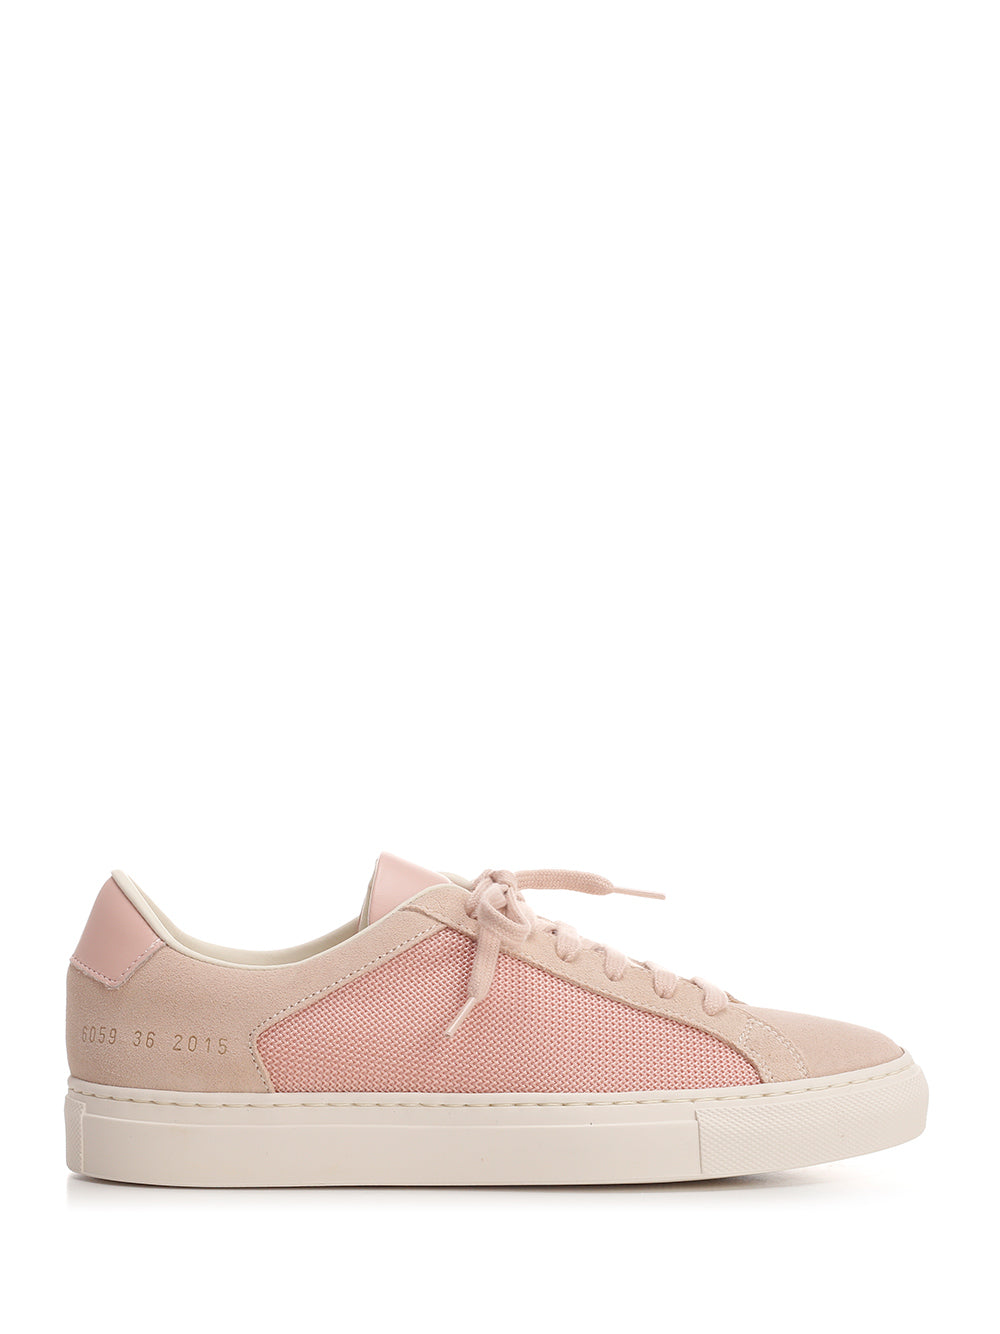 Common Projects Leathers COMMON PROJECTS RETRO SUMMER EDITION SNEAKERS